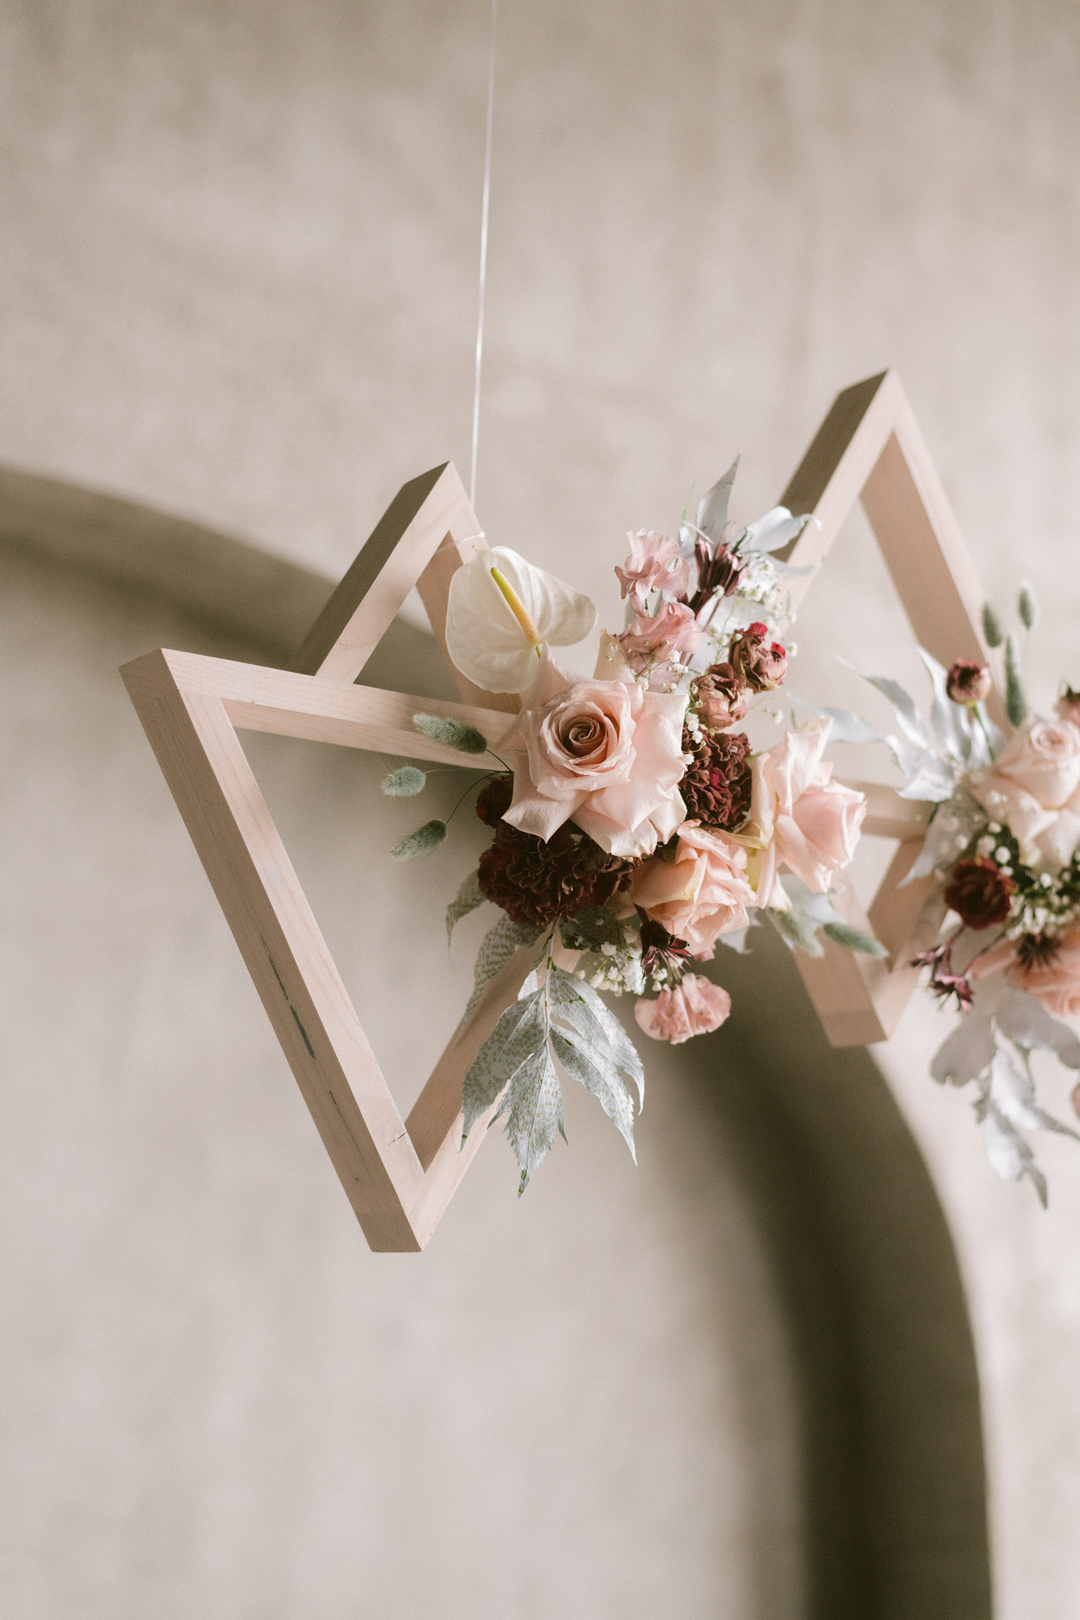 Triangular floral wedding installation floating in the air